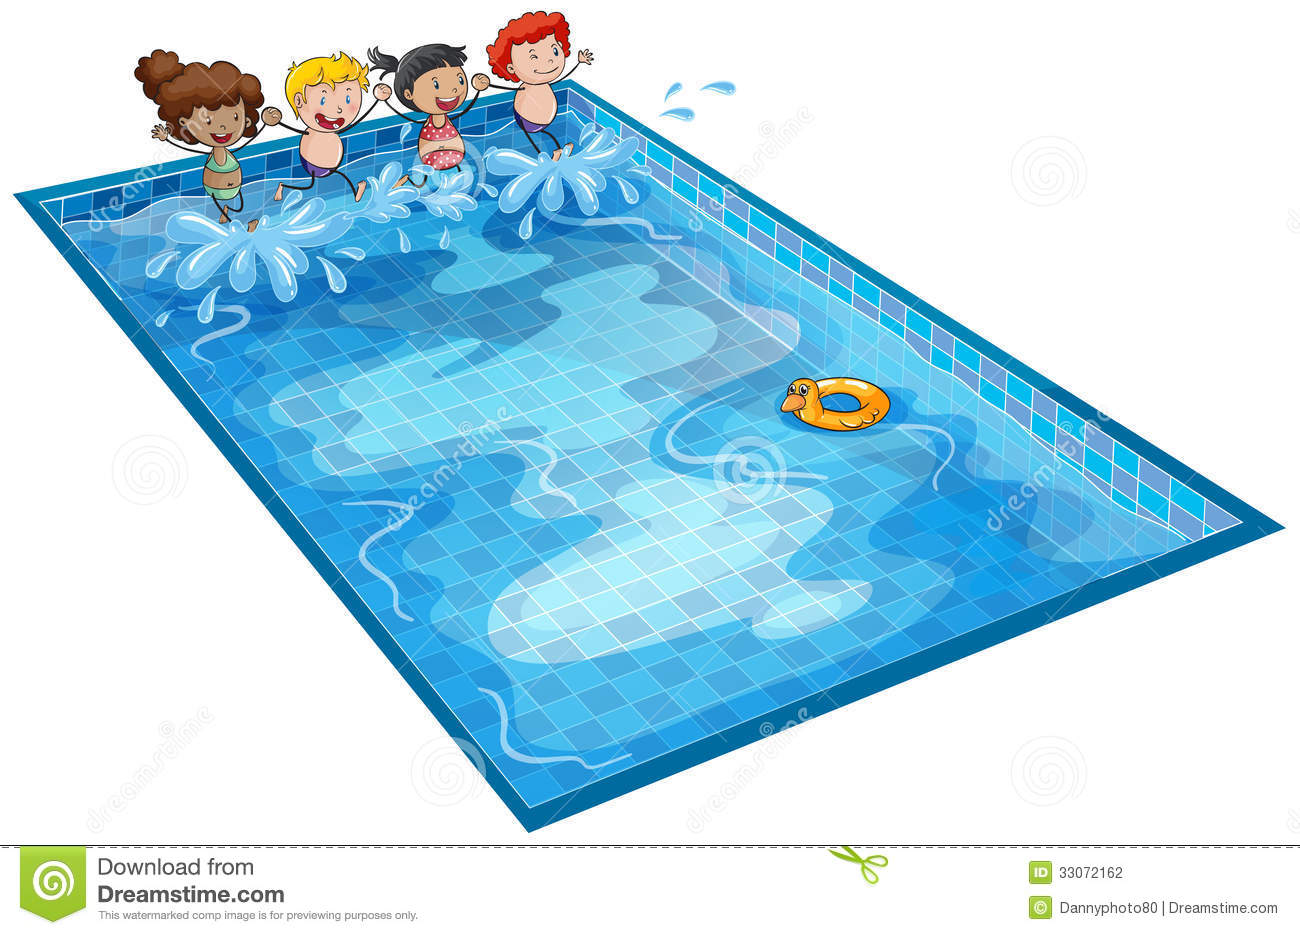 Cartoon swimming pool clipart.